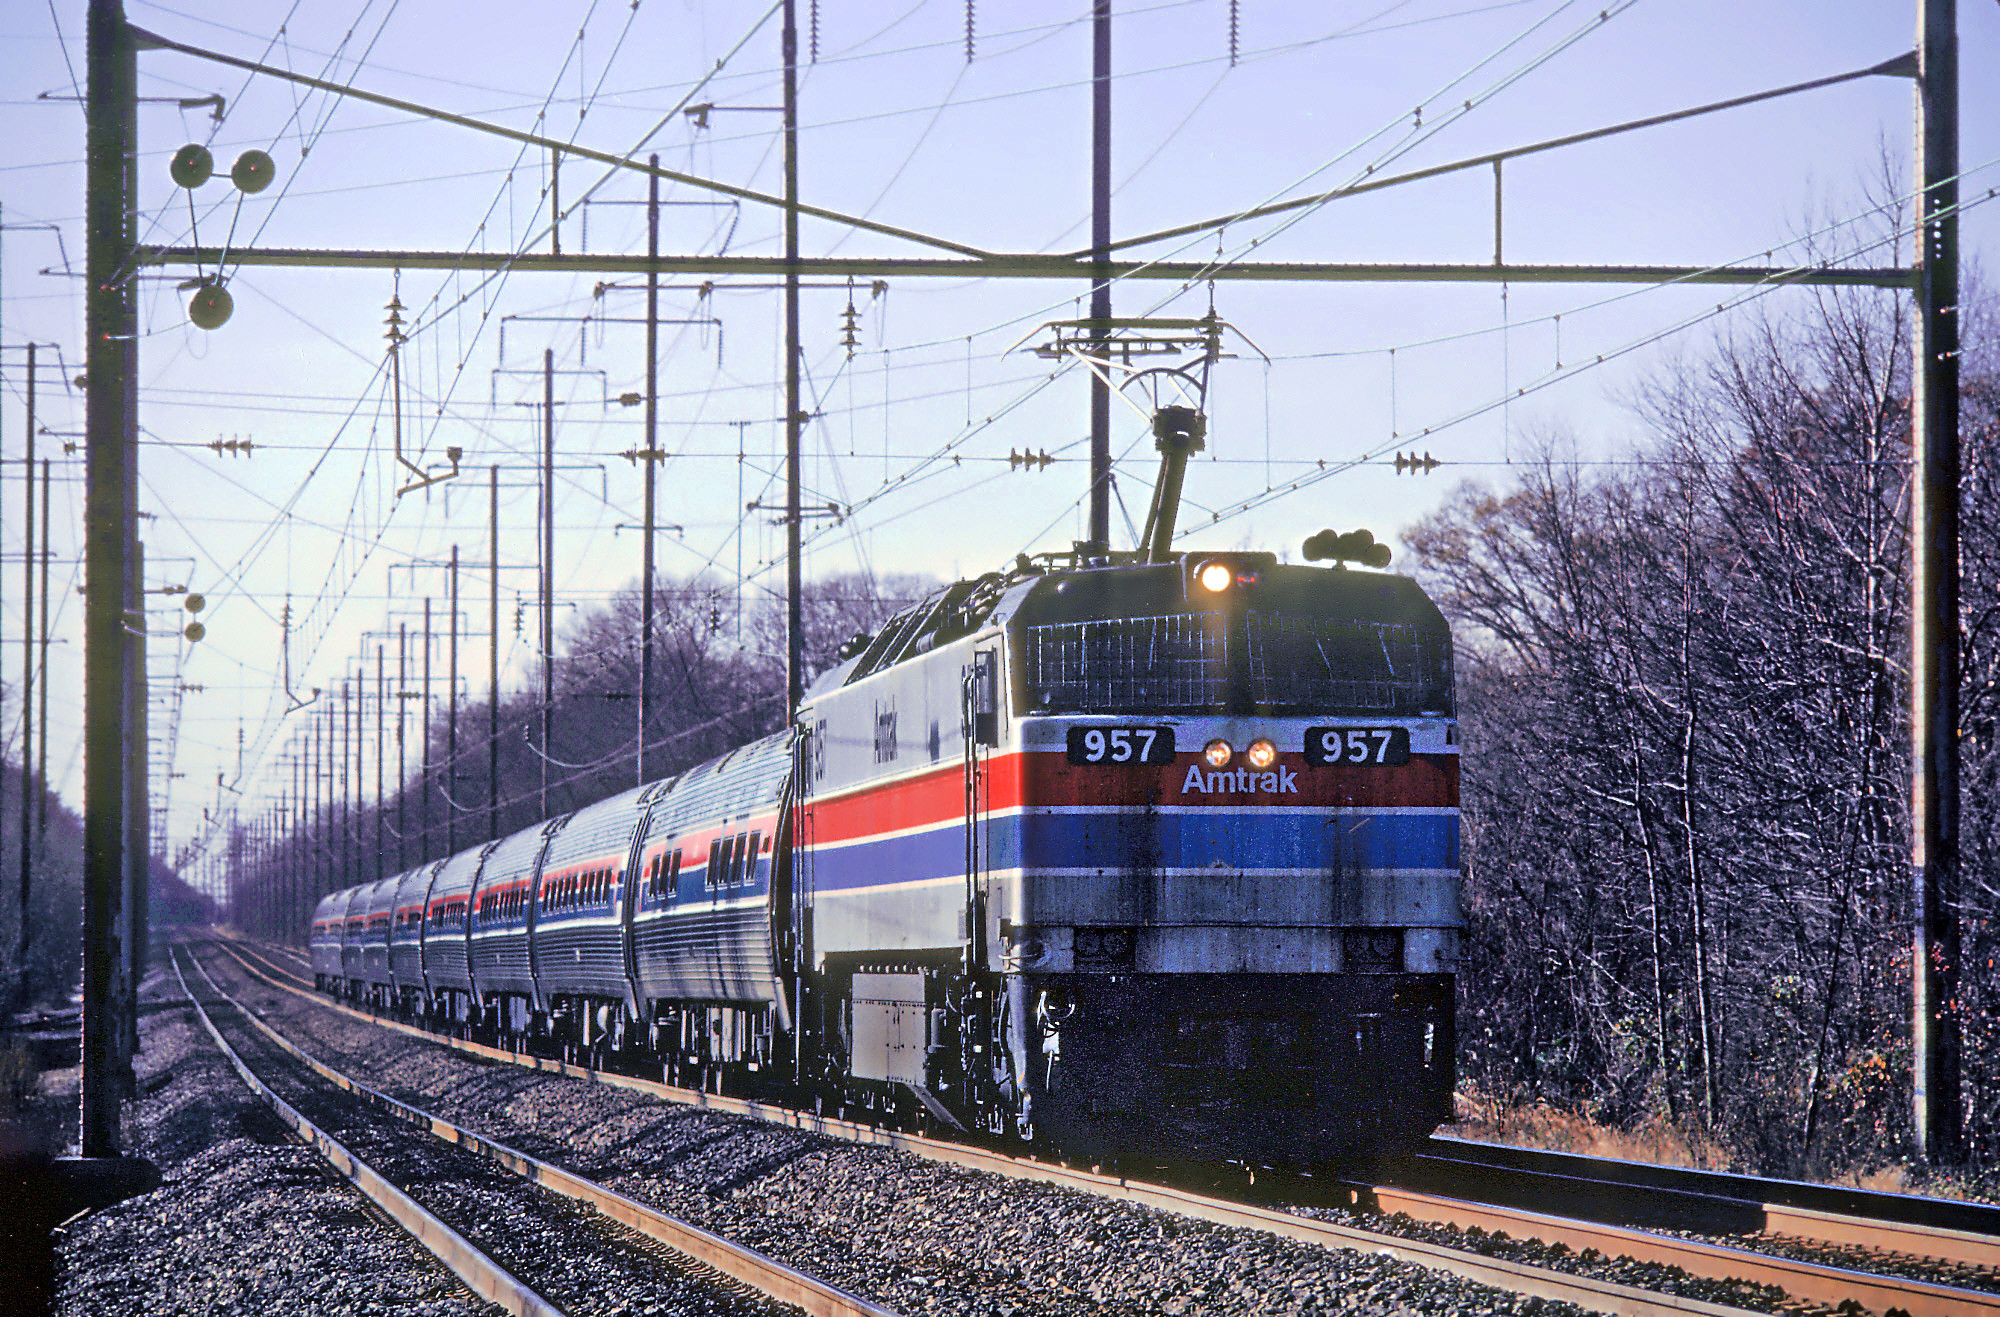 File:Amtrak 957 leading a northbound train through Bowie